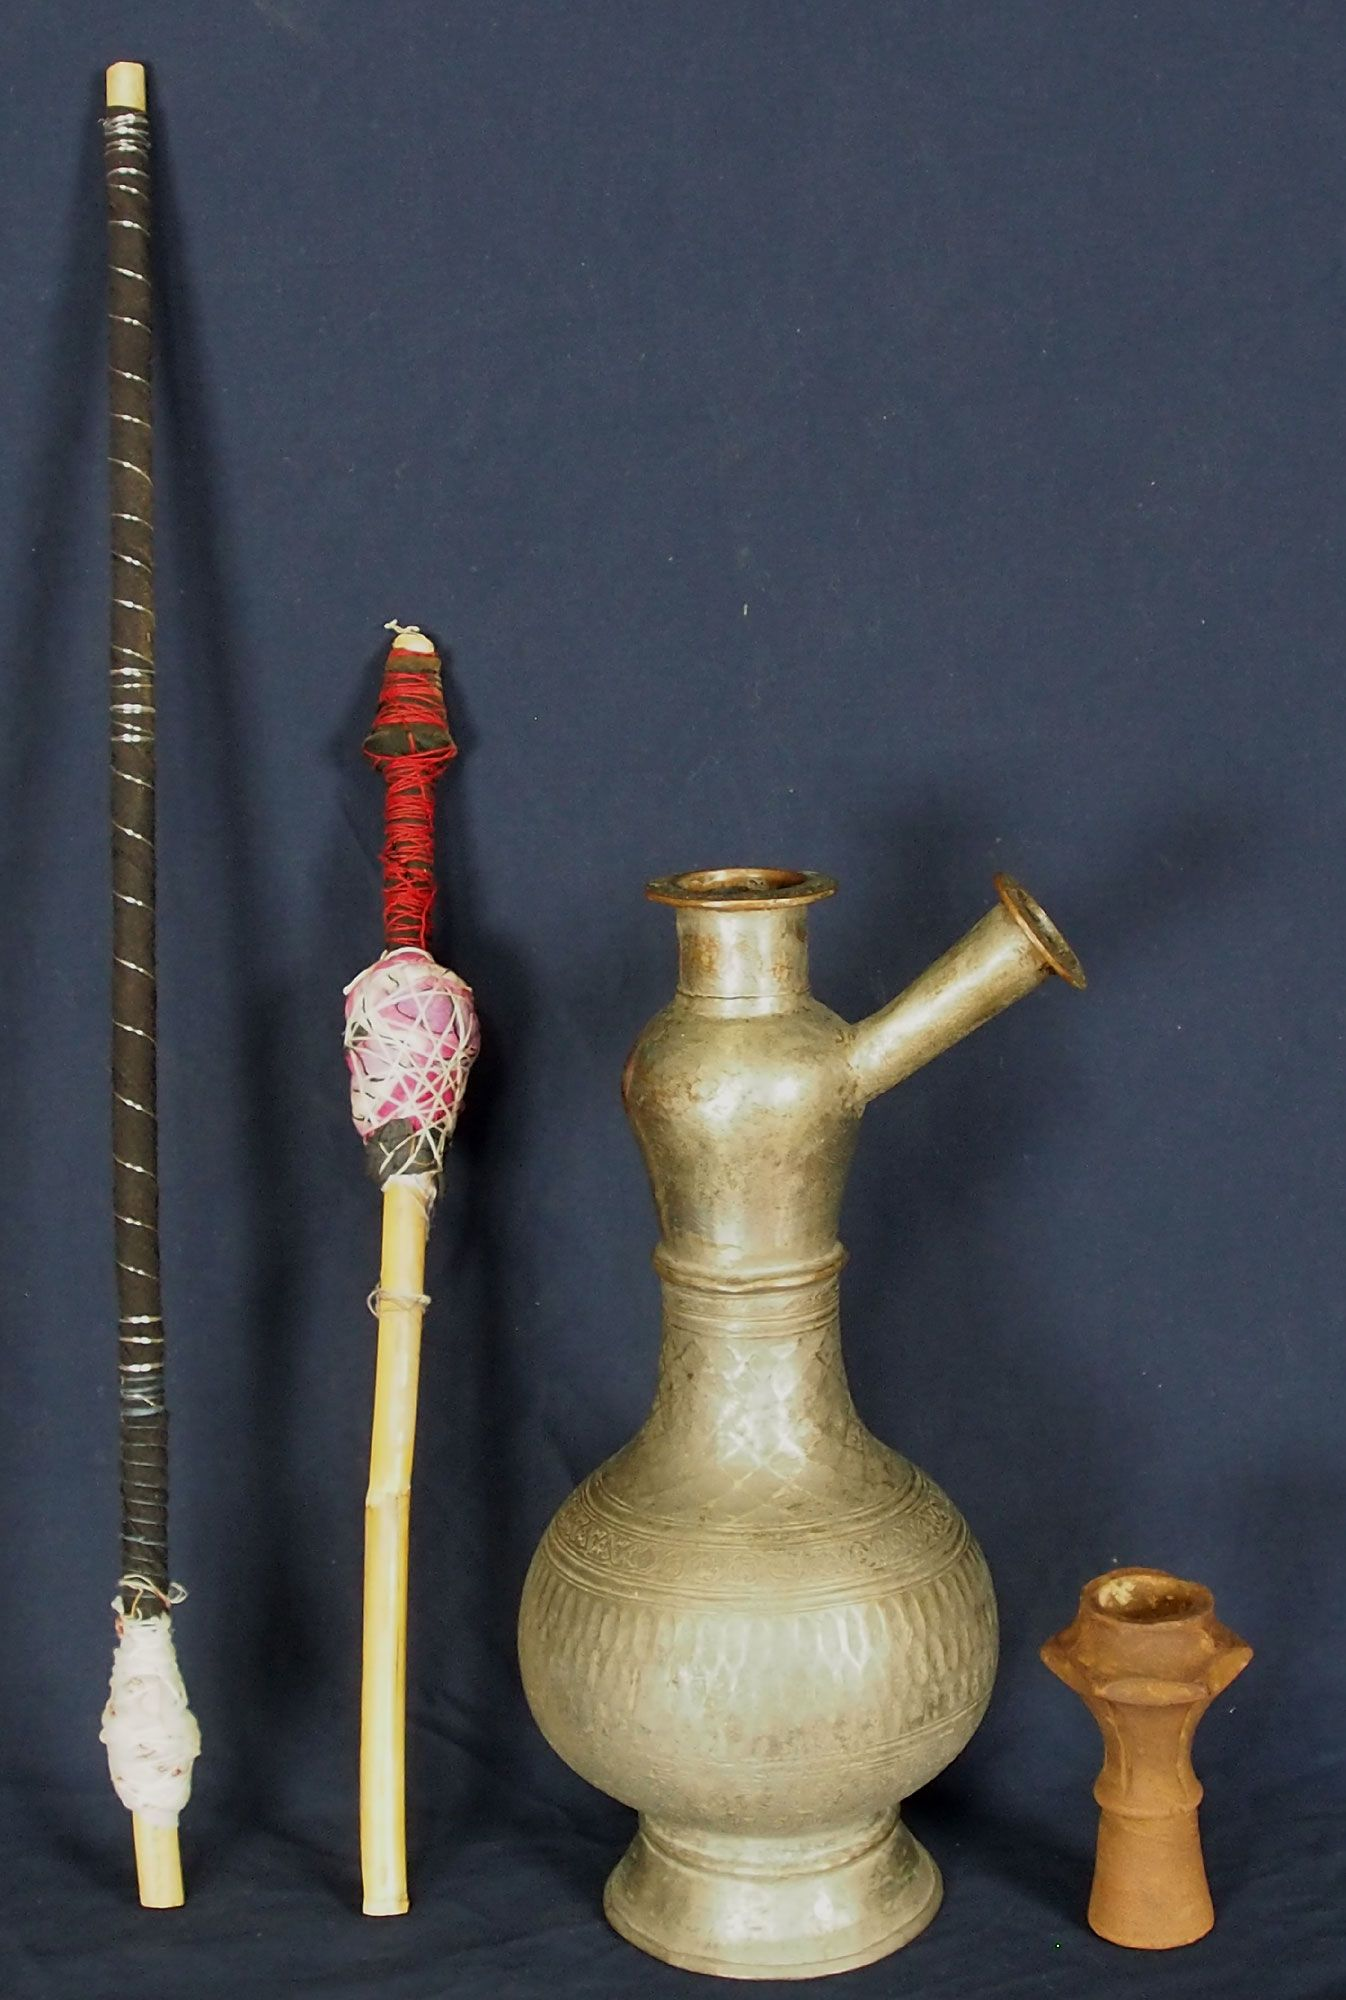 Antique Copper Hookah From Afghanistan